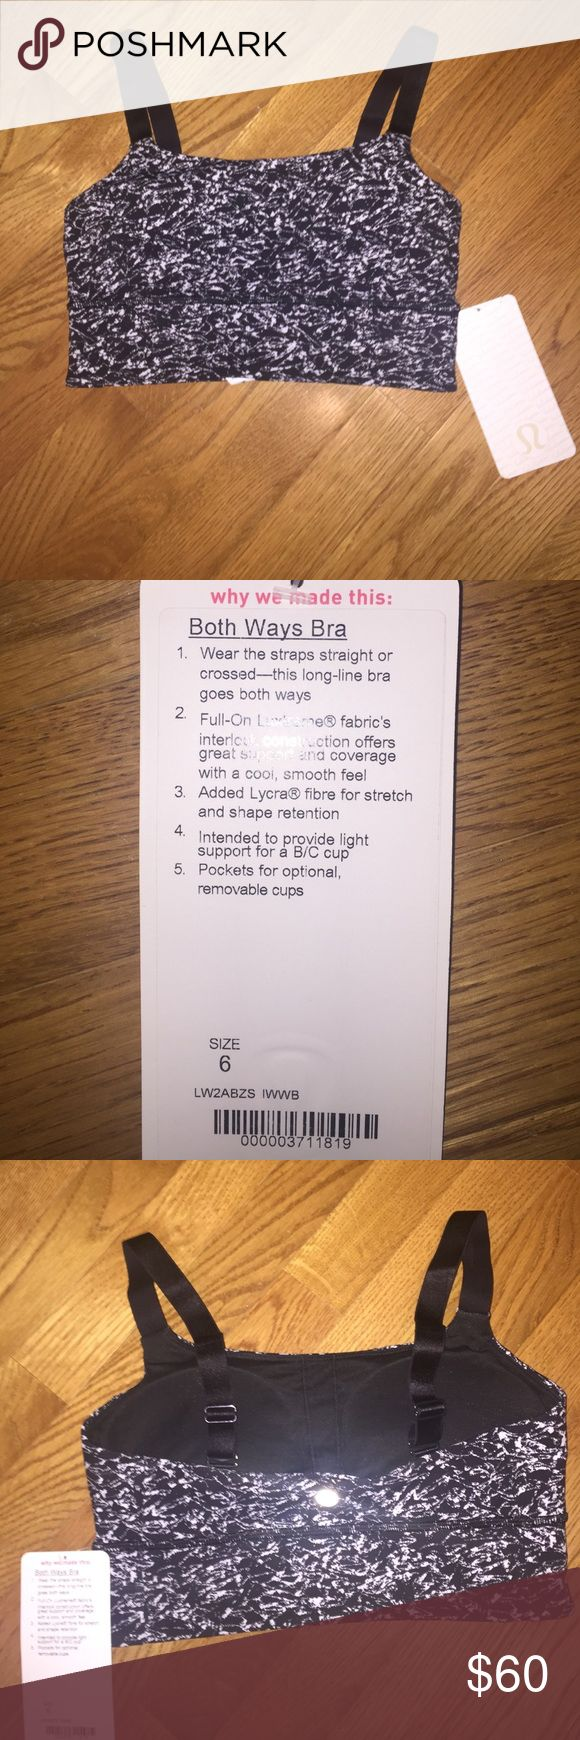 """Lululemon """"Both Ways Bra"""" black/white Never been worn! Only taken out of the bag to take pictures. Supportive, adjustable straps that can be worn crossed or straight back. Removable bra pads. lululemon athletica Intimates & Sleepwear Bras"""